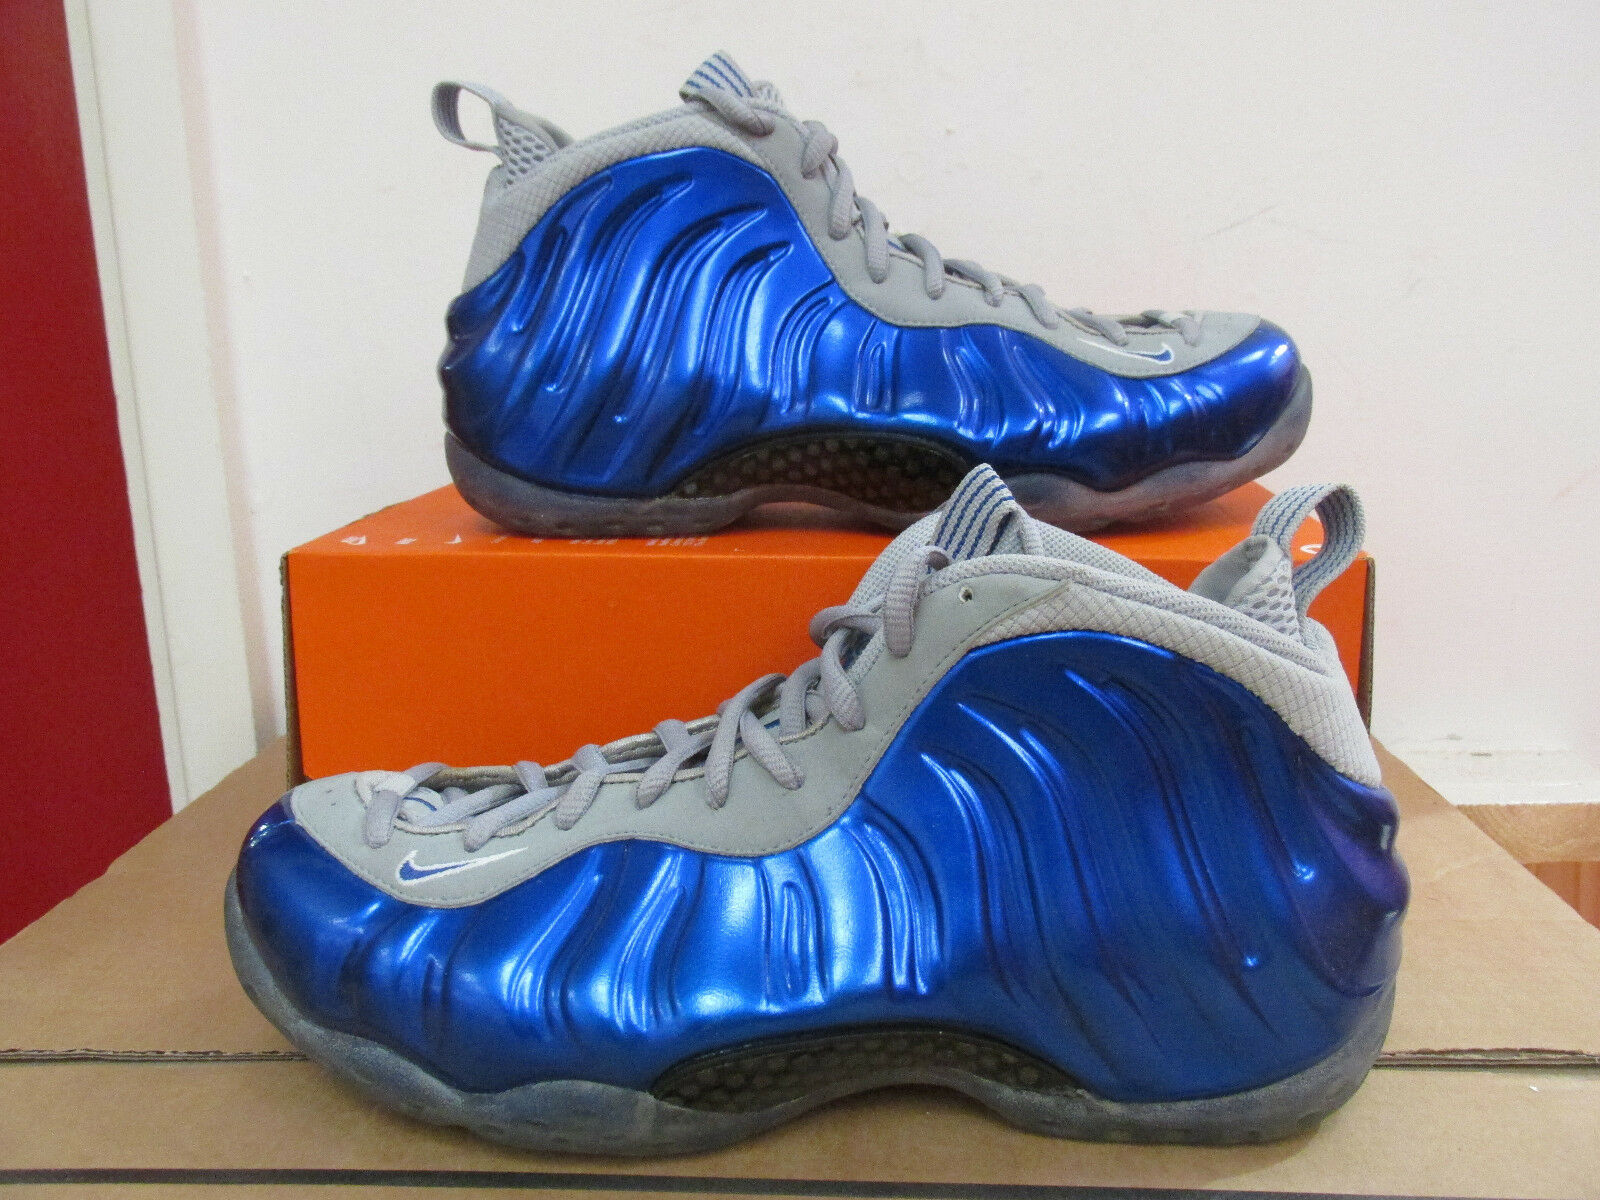 Nike Air Foamposite Unique Tennis Tennis Tennis Basketball Hommes 314996 401 Baskets 8a0a8c